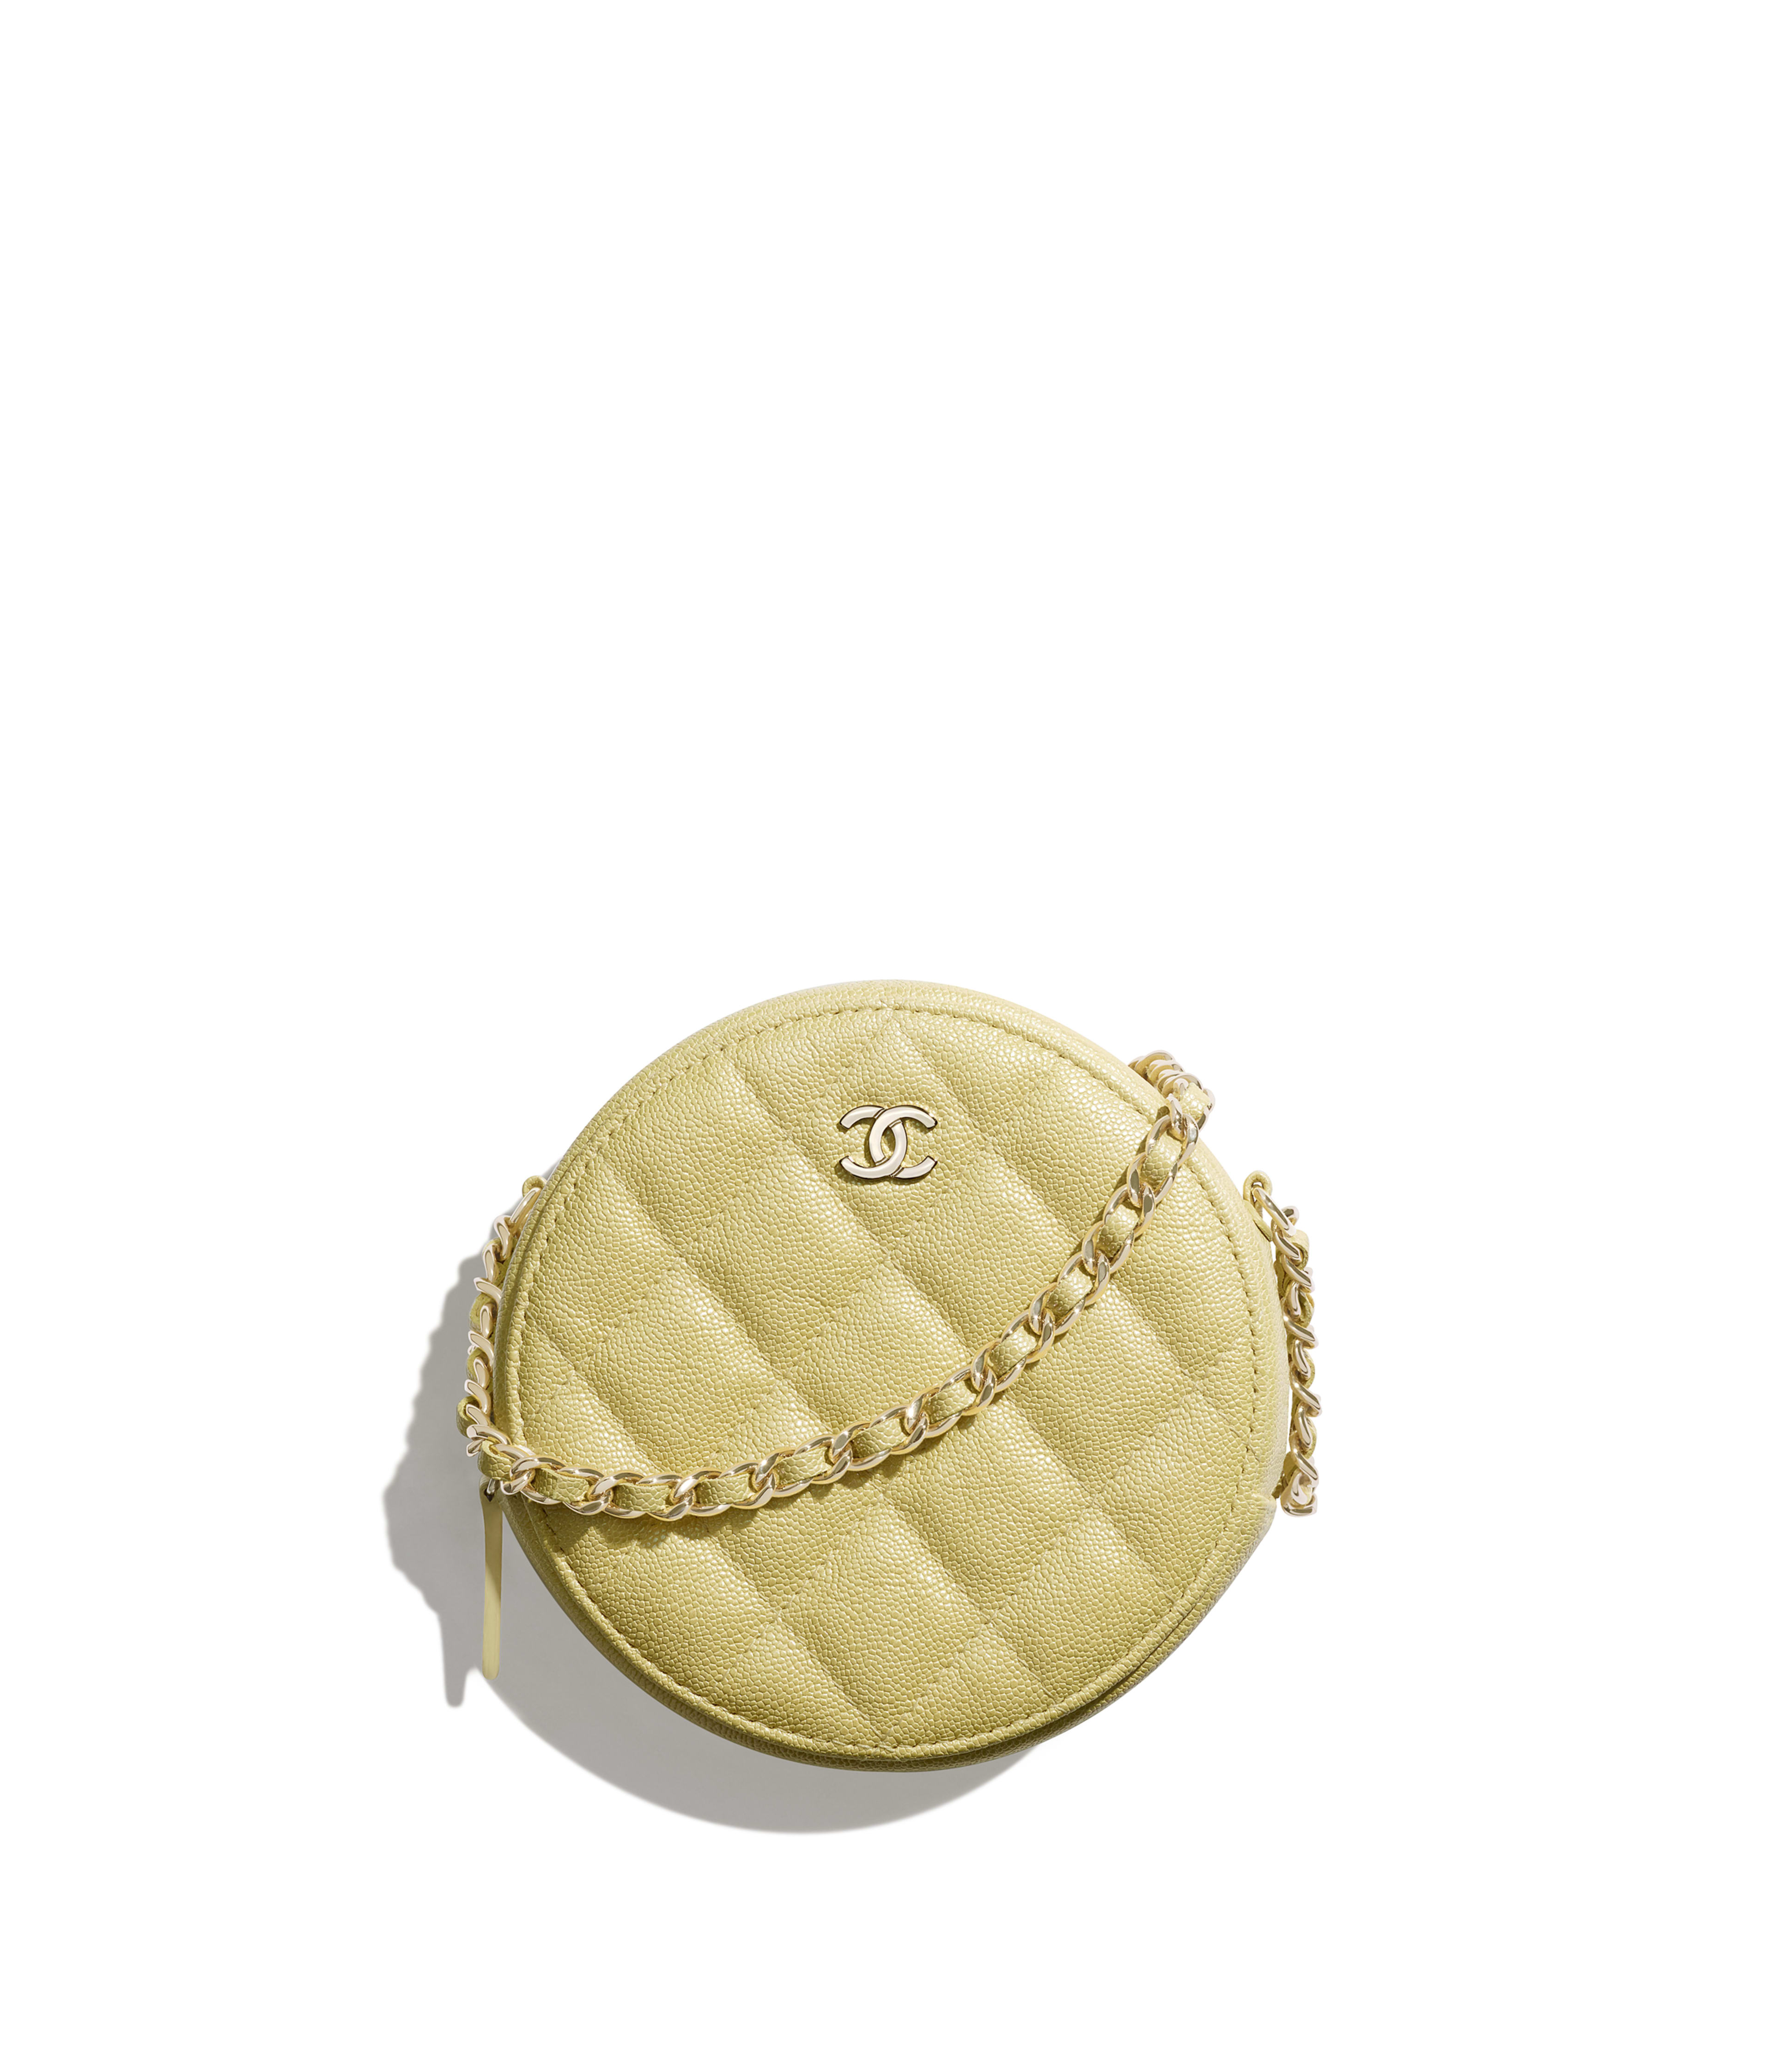 fbaa69fff0 Classic Clutch with Chain Iridescent Grained Calfskin   Gold-Tone Metal